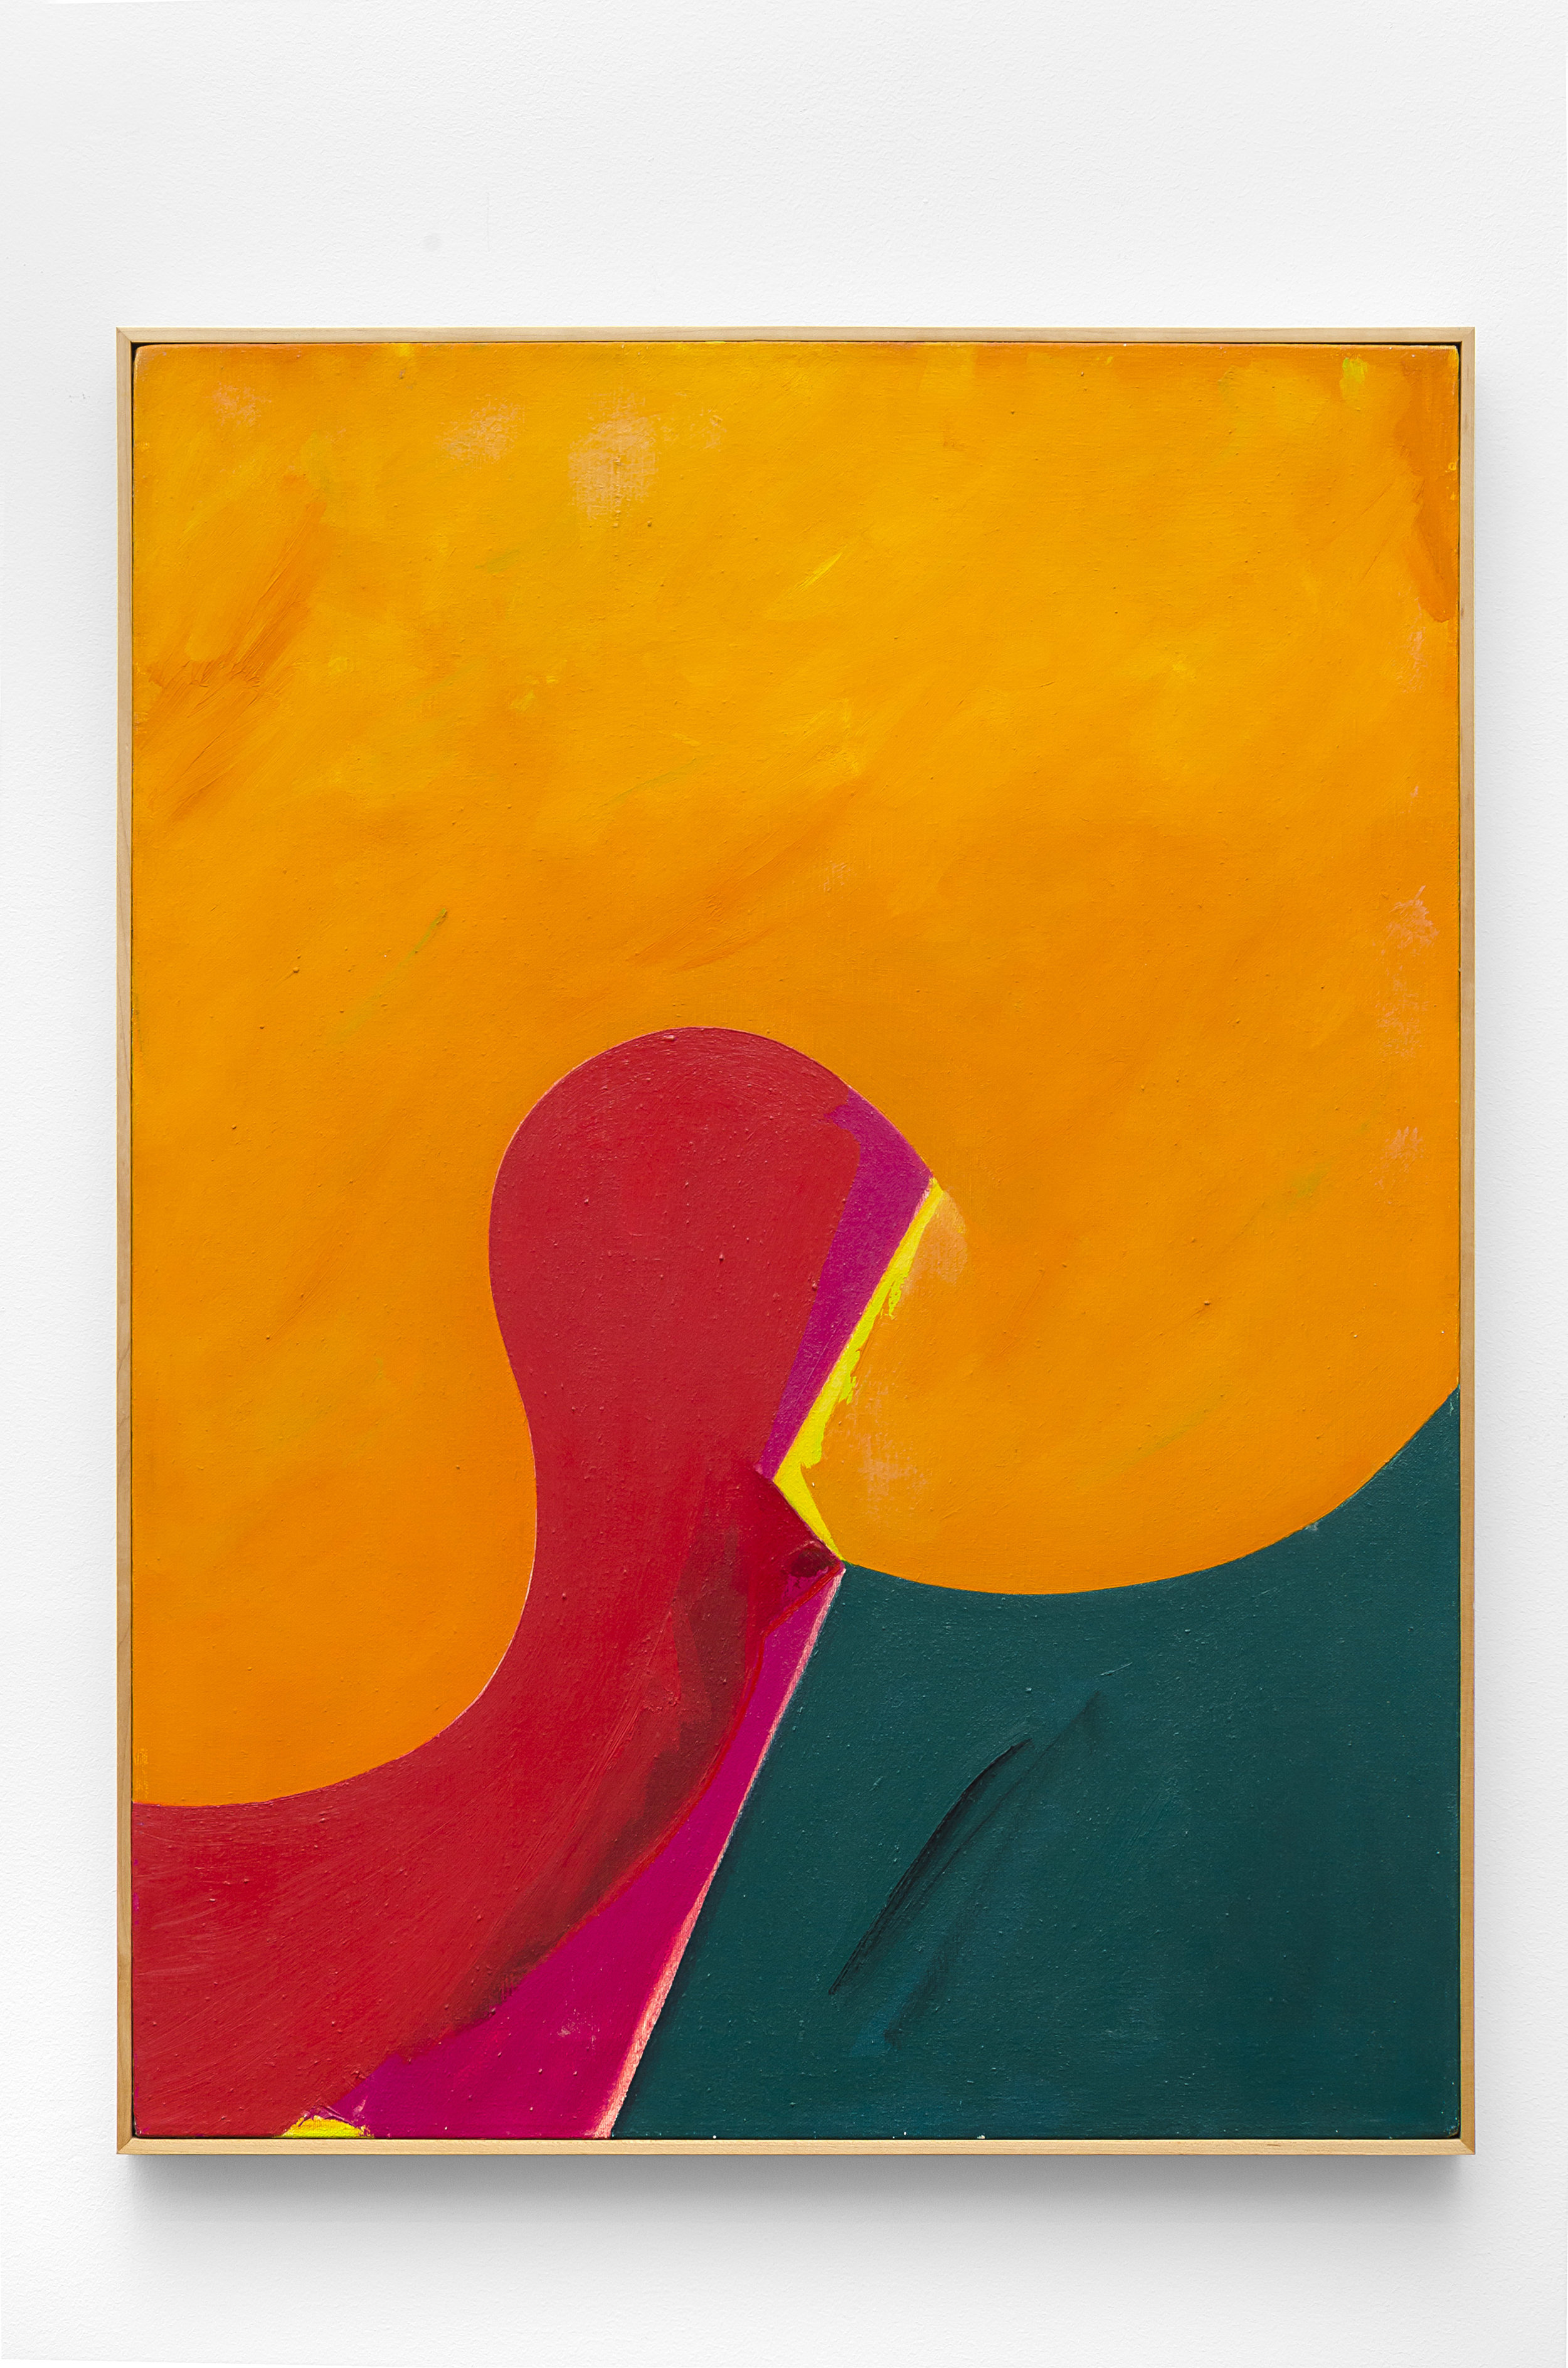 Nov #2 , 1968 acrylic on canvas 30.5 x 22.5 inches; 77.5 x 57.2 centimeters